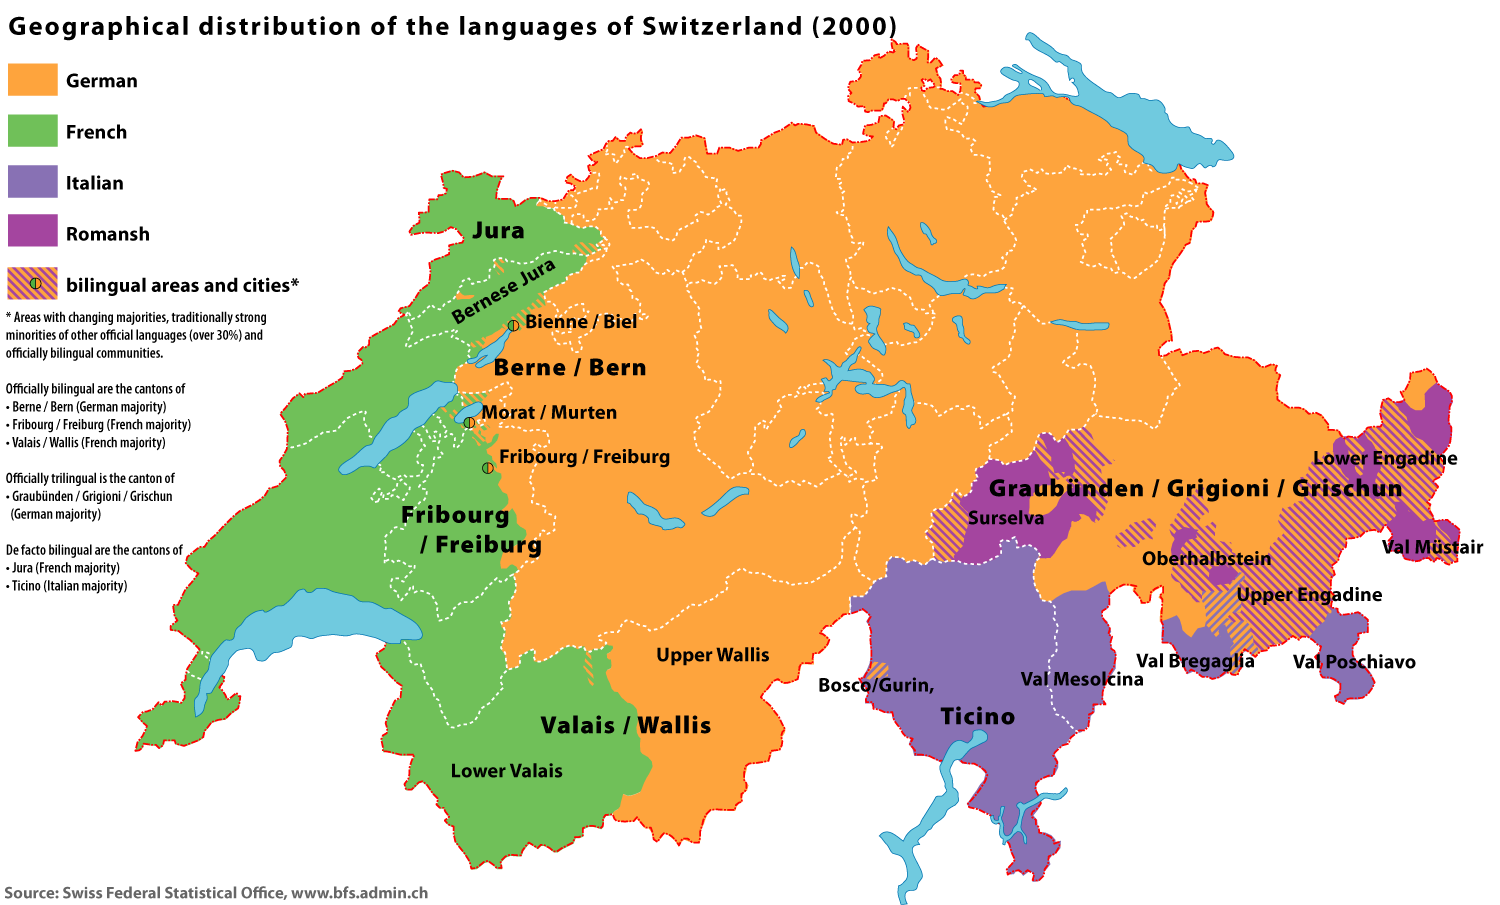 4_languages_switzerland